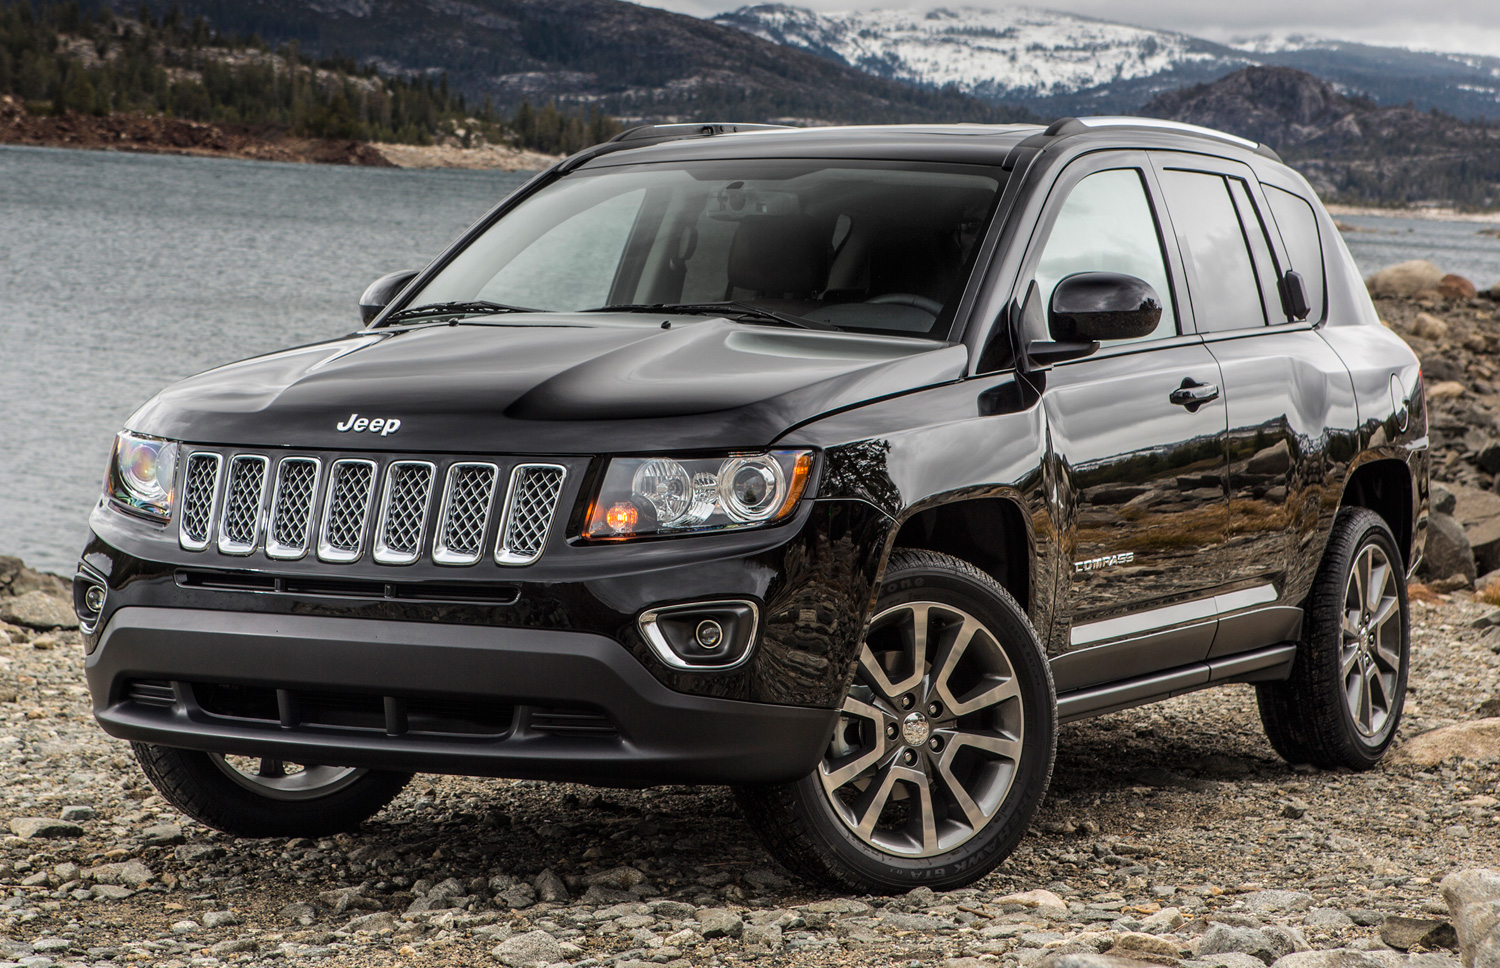 Jeep compass and